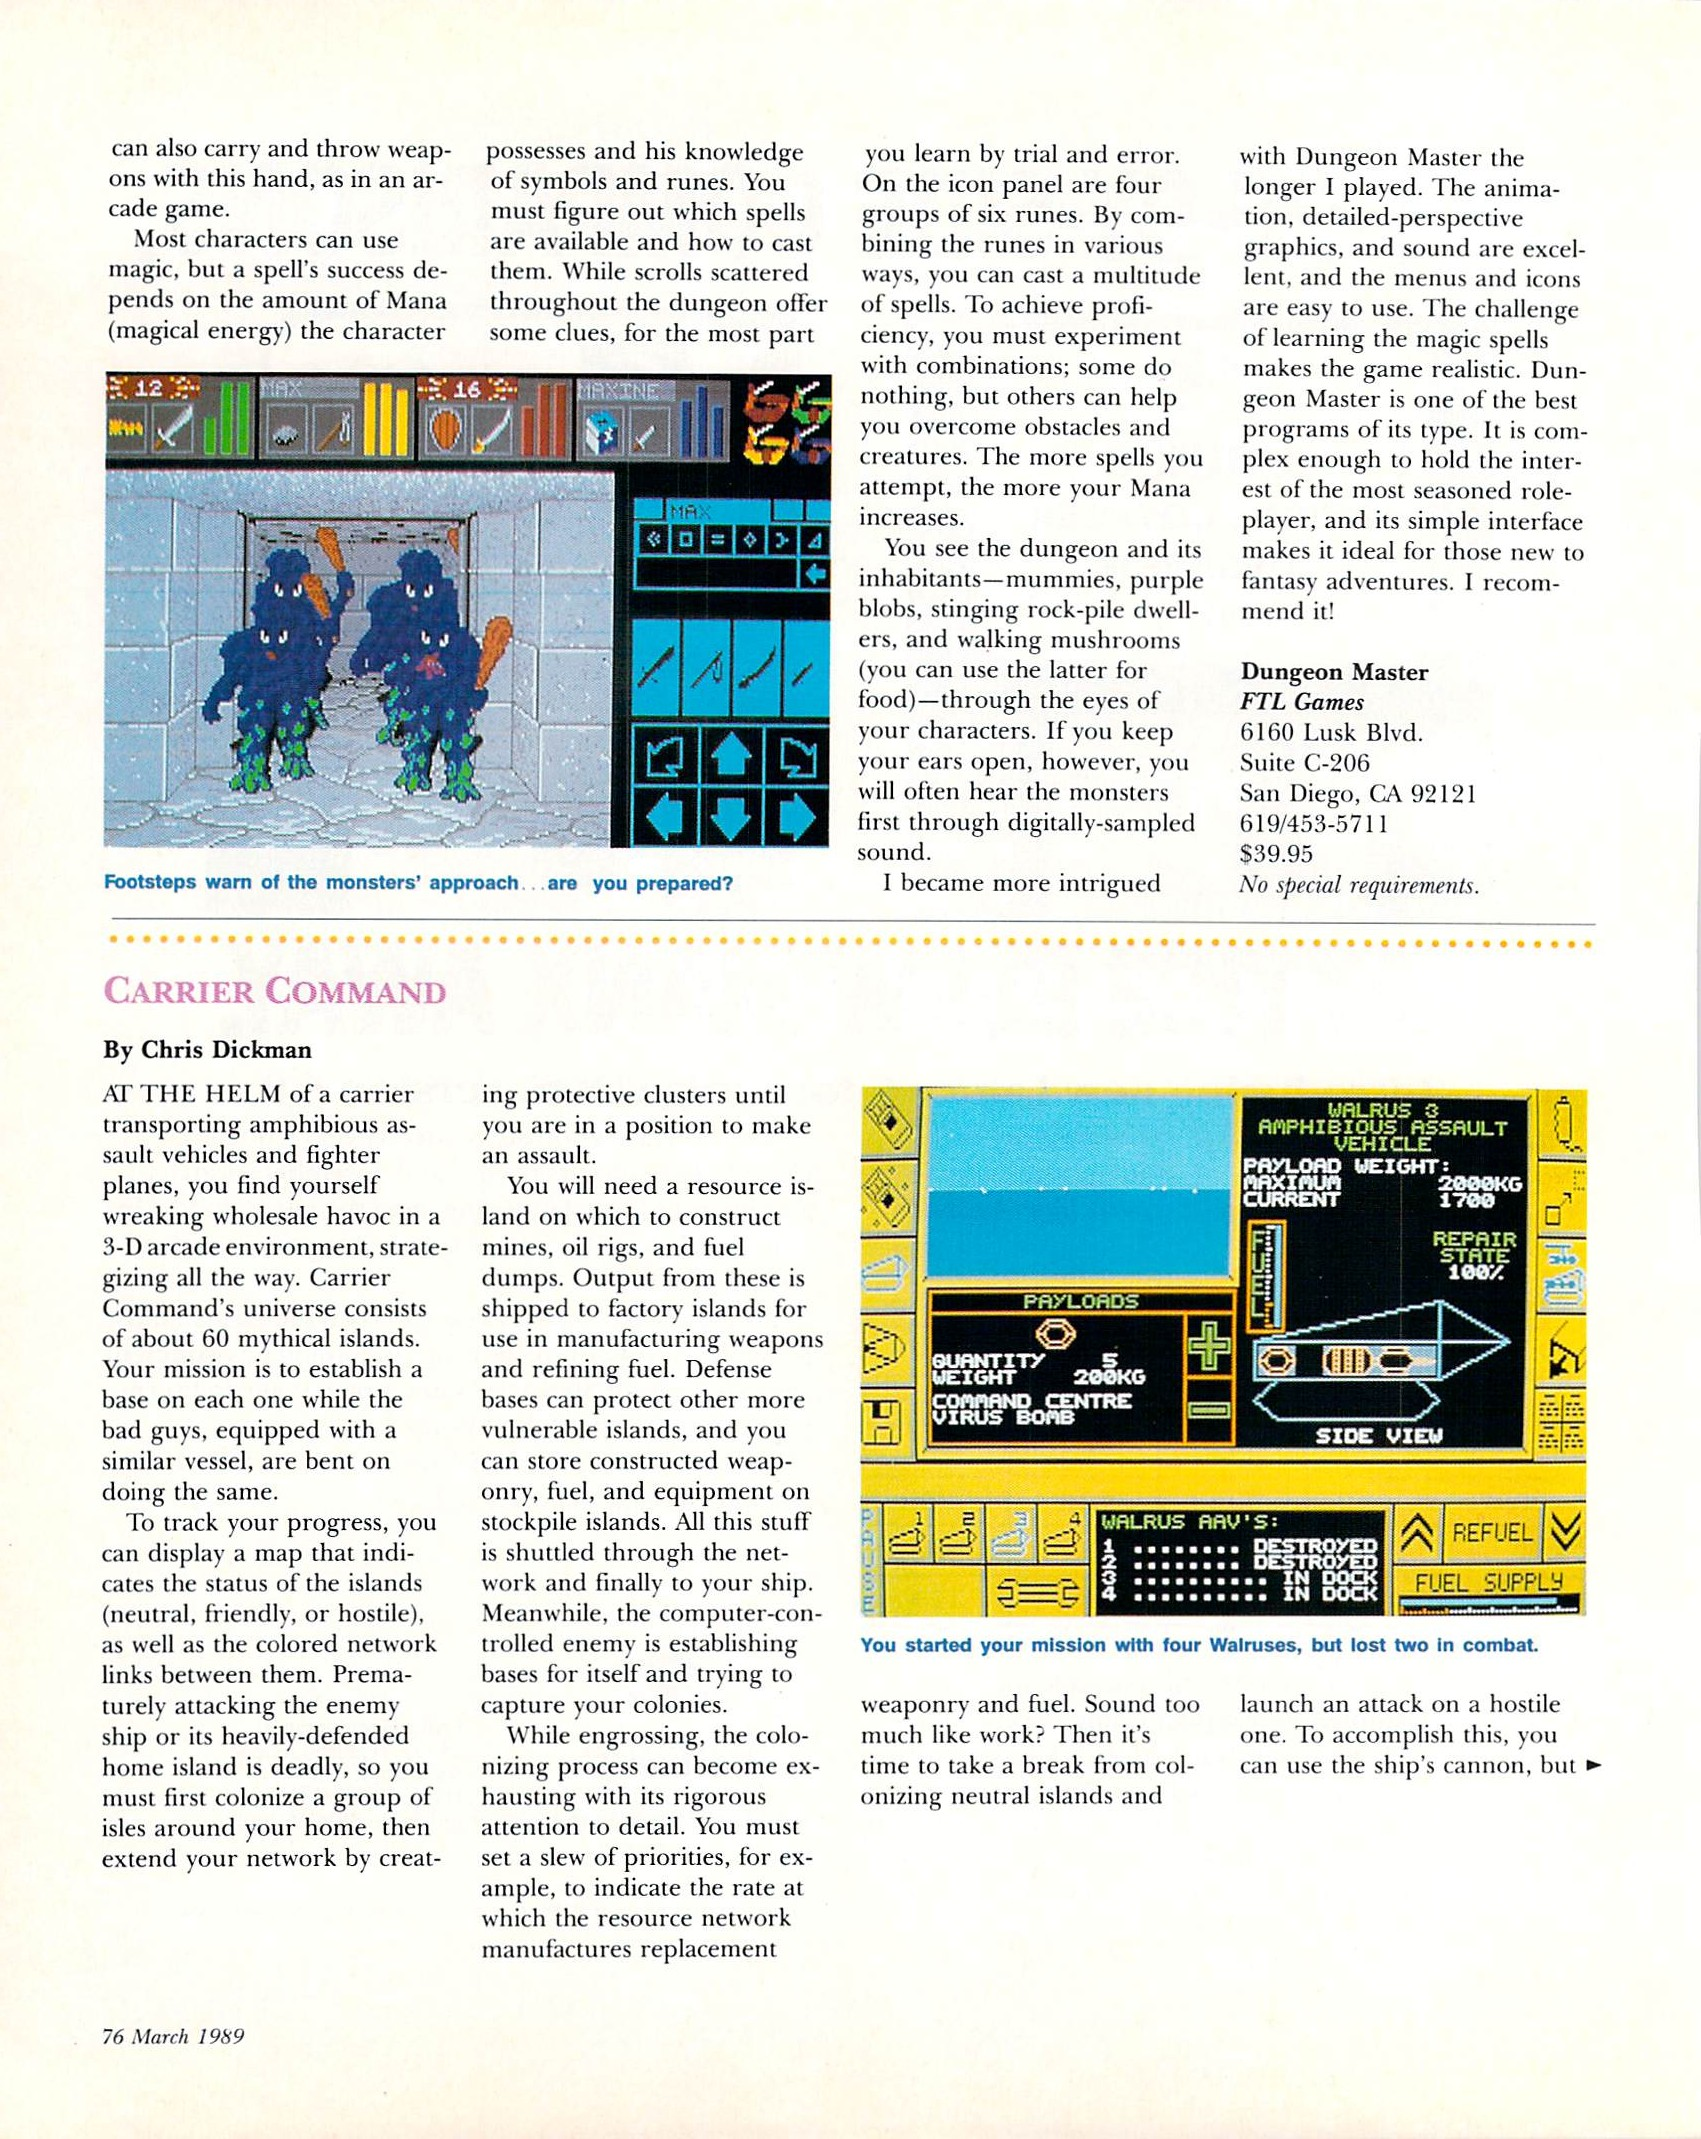 Dungeon Master for Amiga Review published in American magazine 'Amiga World', Vol 5 No 3 March 1989, Page 76